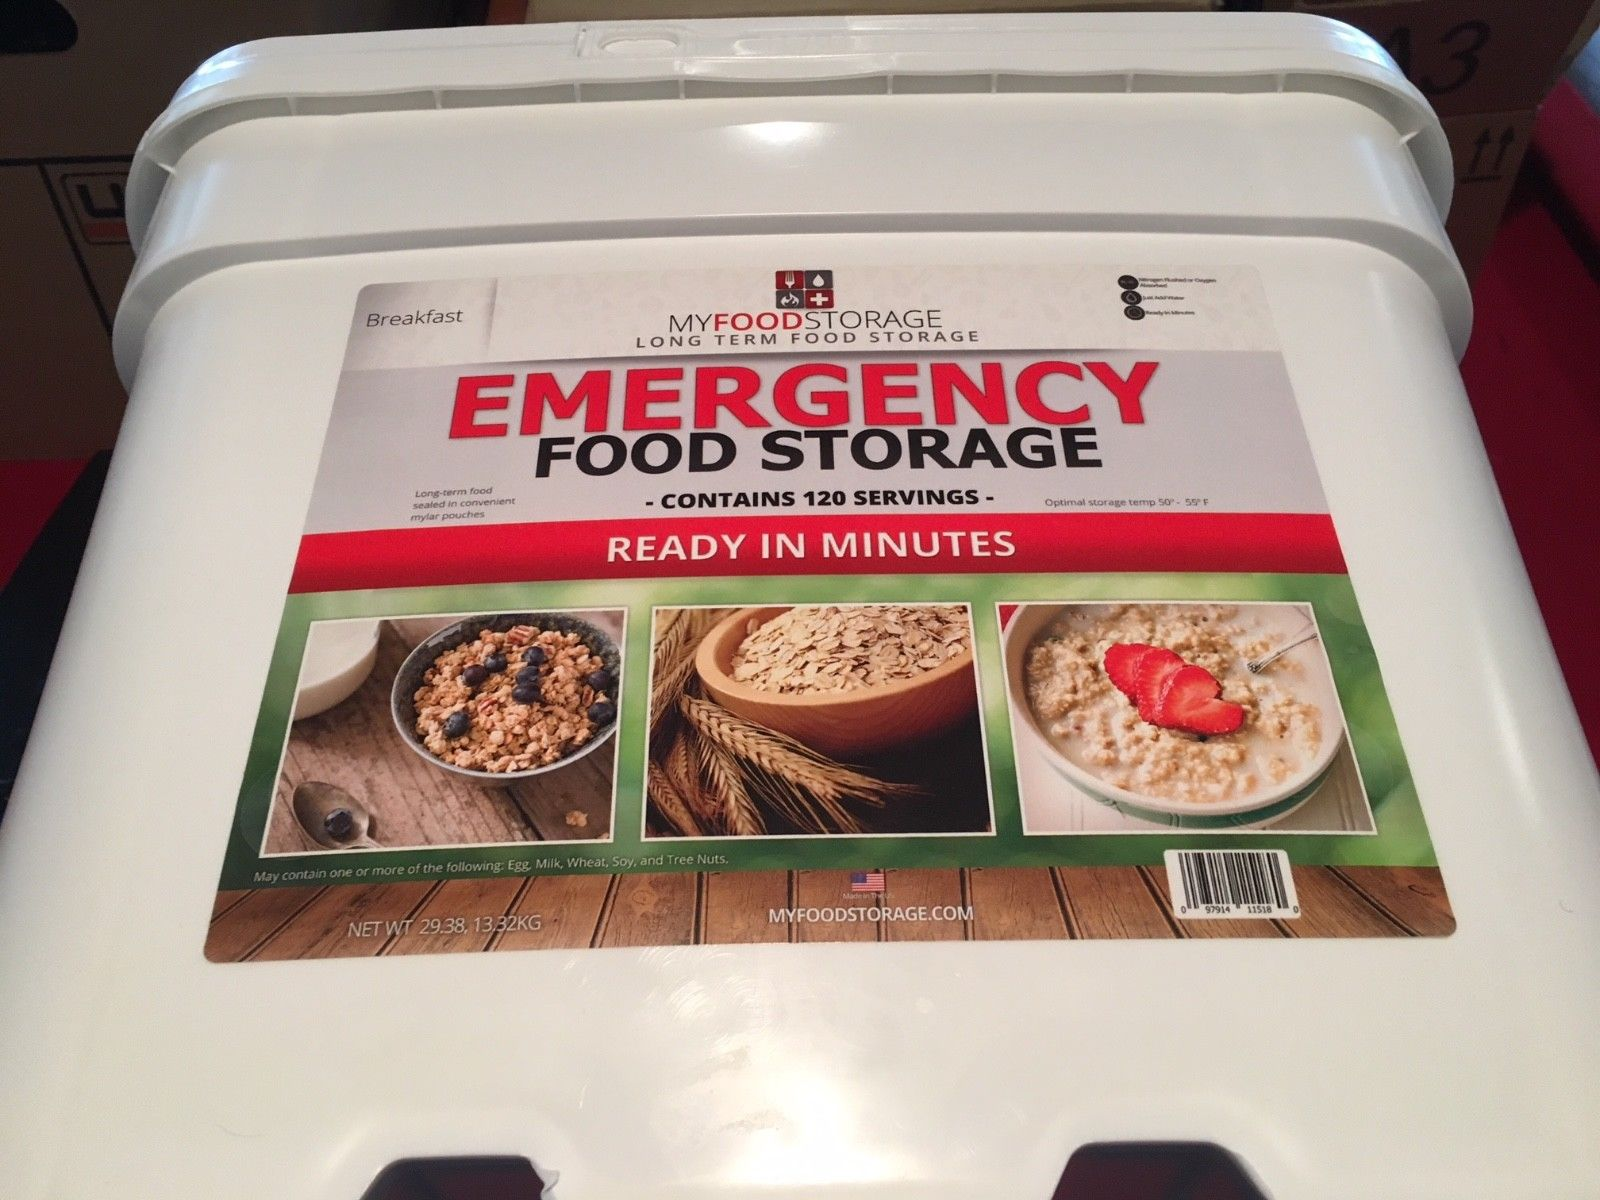 Emergency Food Supply: My Food Storage [brand], Breakfast, 120 Servings 1